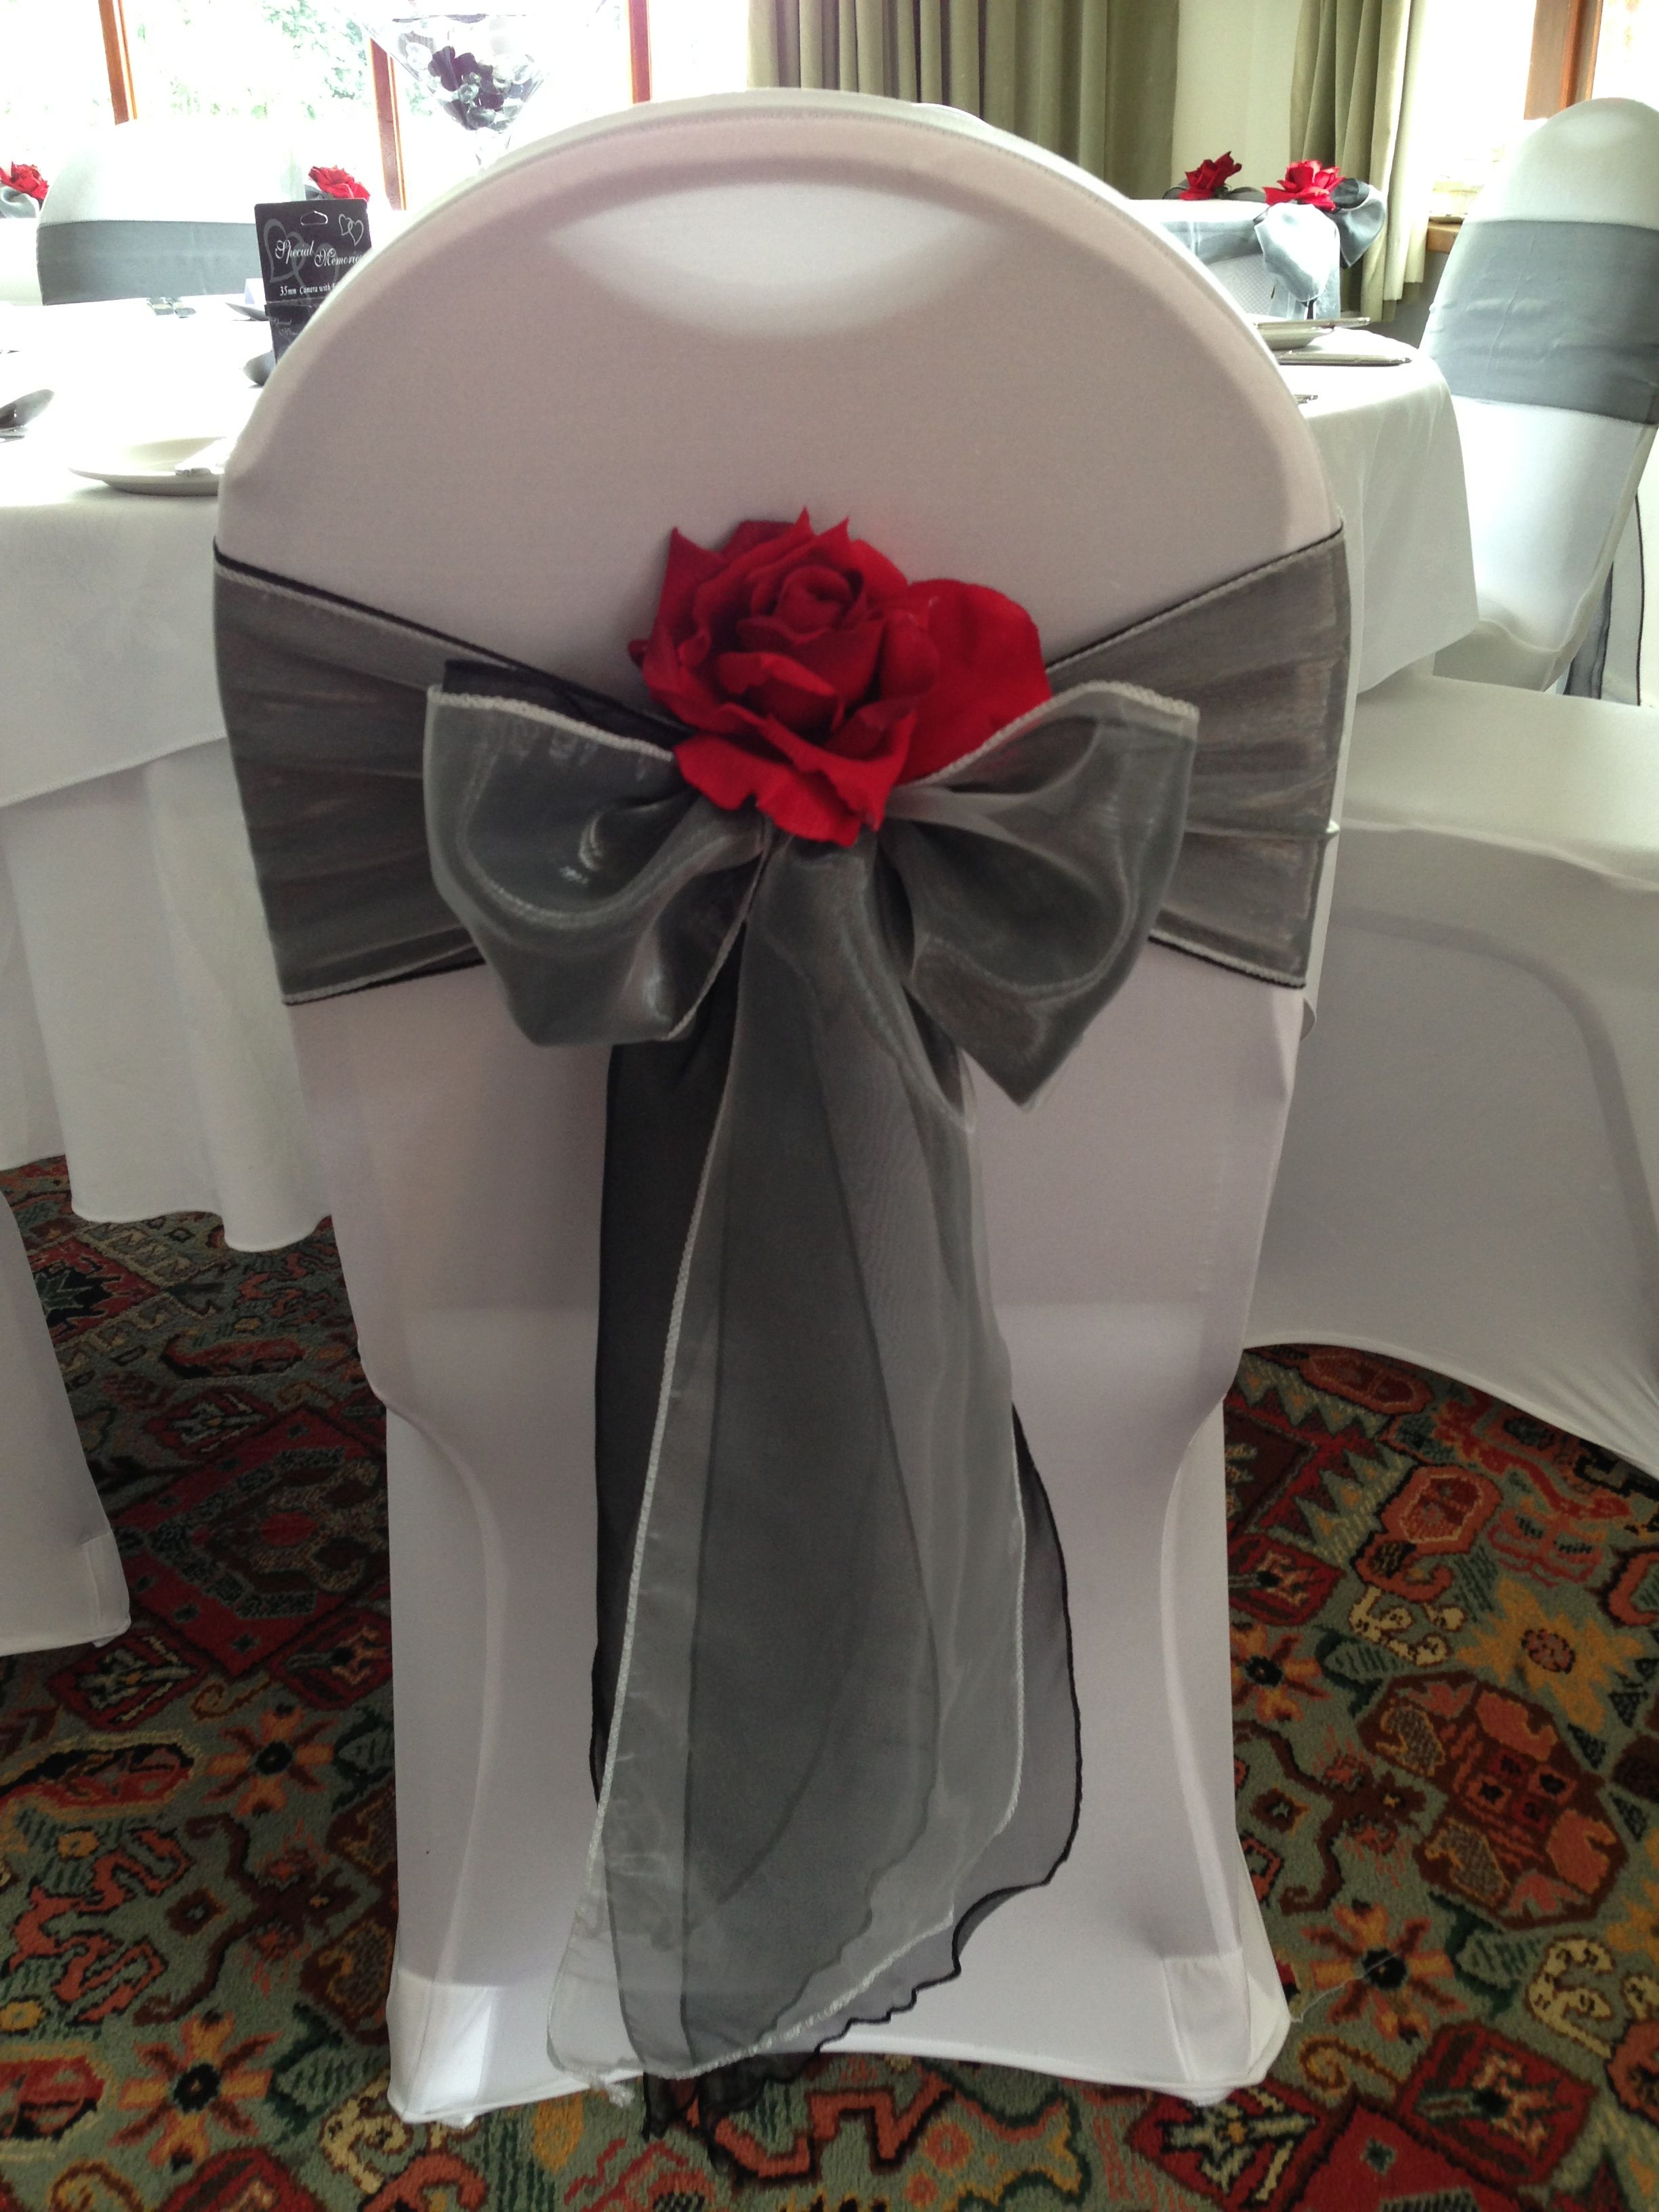 Gray Chair Covers For Weddings Steel In Chennai Charcoal With Red Was The Scheme This Smart Wedding